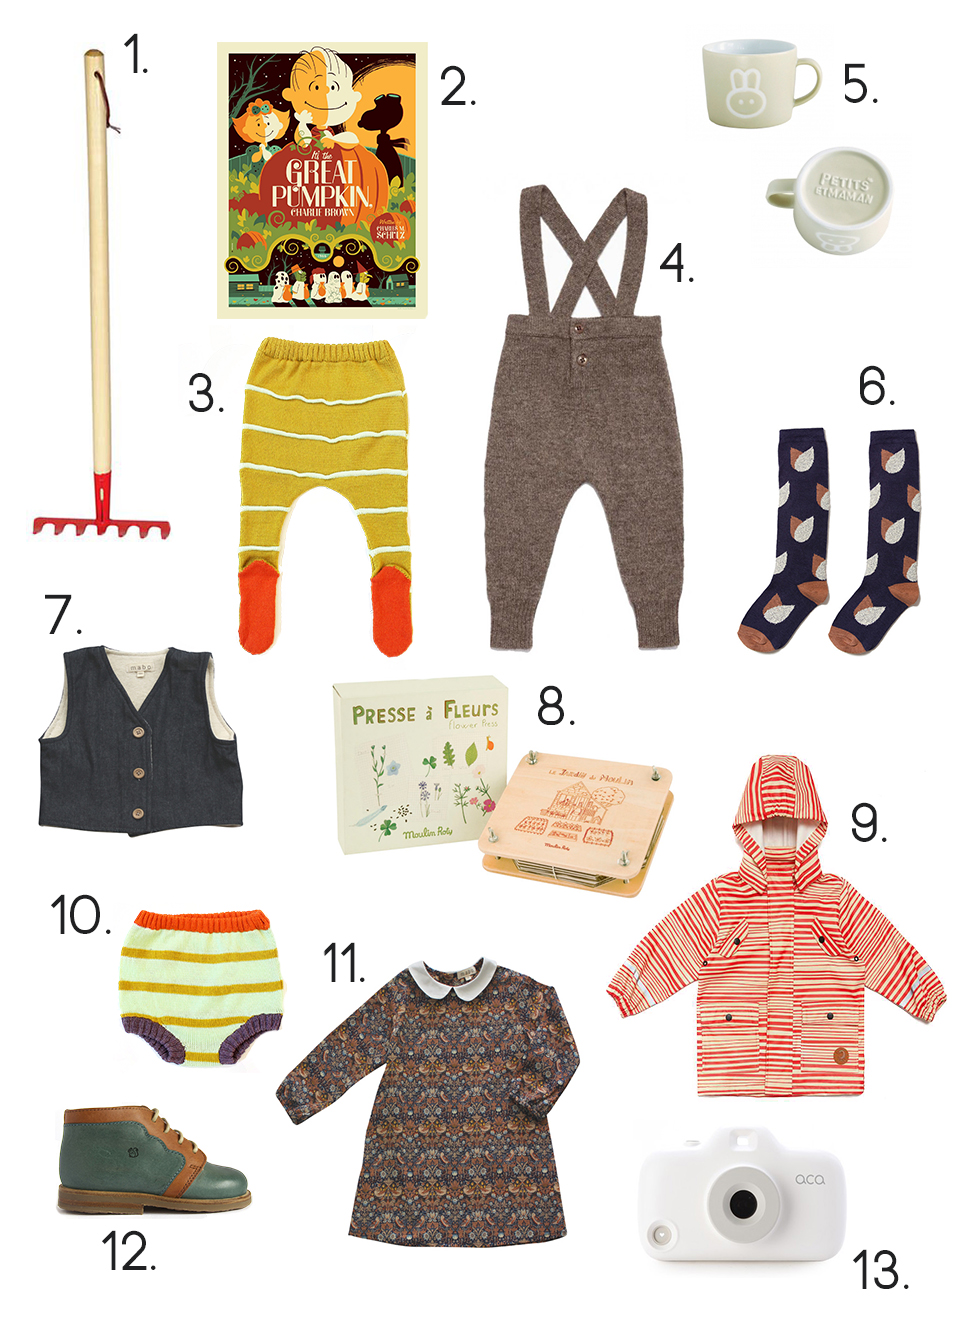 "1.  Kid's Toysmith Garden Rake , 2.  Tom Whalen ""It's The Great Pumpkin Charlie Brown"" Limited Edition Poster , 3.  BabyDEGAN Stripe Footie Knit Leggings , 4.  Caramel Baby & Child  Whitebeam Dungarees / Mammoth  , 5.  Petits Et Maman Child Size Ceramic Mug , 6.  Hansel From Basel Flower Knee High Socks , 7.  Mabo Kids Denim and Sherpa Vest , 8.  Moulin Roty Flower and Leaf Press Kit , 9.  Mini Rodini Stripe Rain Jacket , 10.  BabyDEGAN Striped Knit Baby Bloomer , 11.  Mabo Kids Wynne Strawberry Thief Dress , 12.  Nathalie Verlinden Billy Ankle Boots , 13.  ACA White iPhone 5 Camera Case with Photography App For Kids"